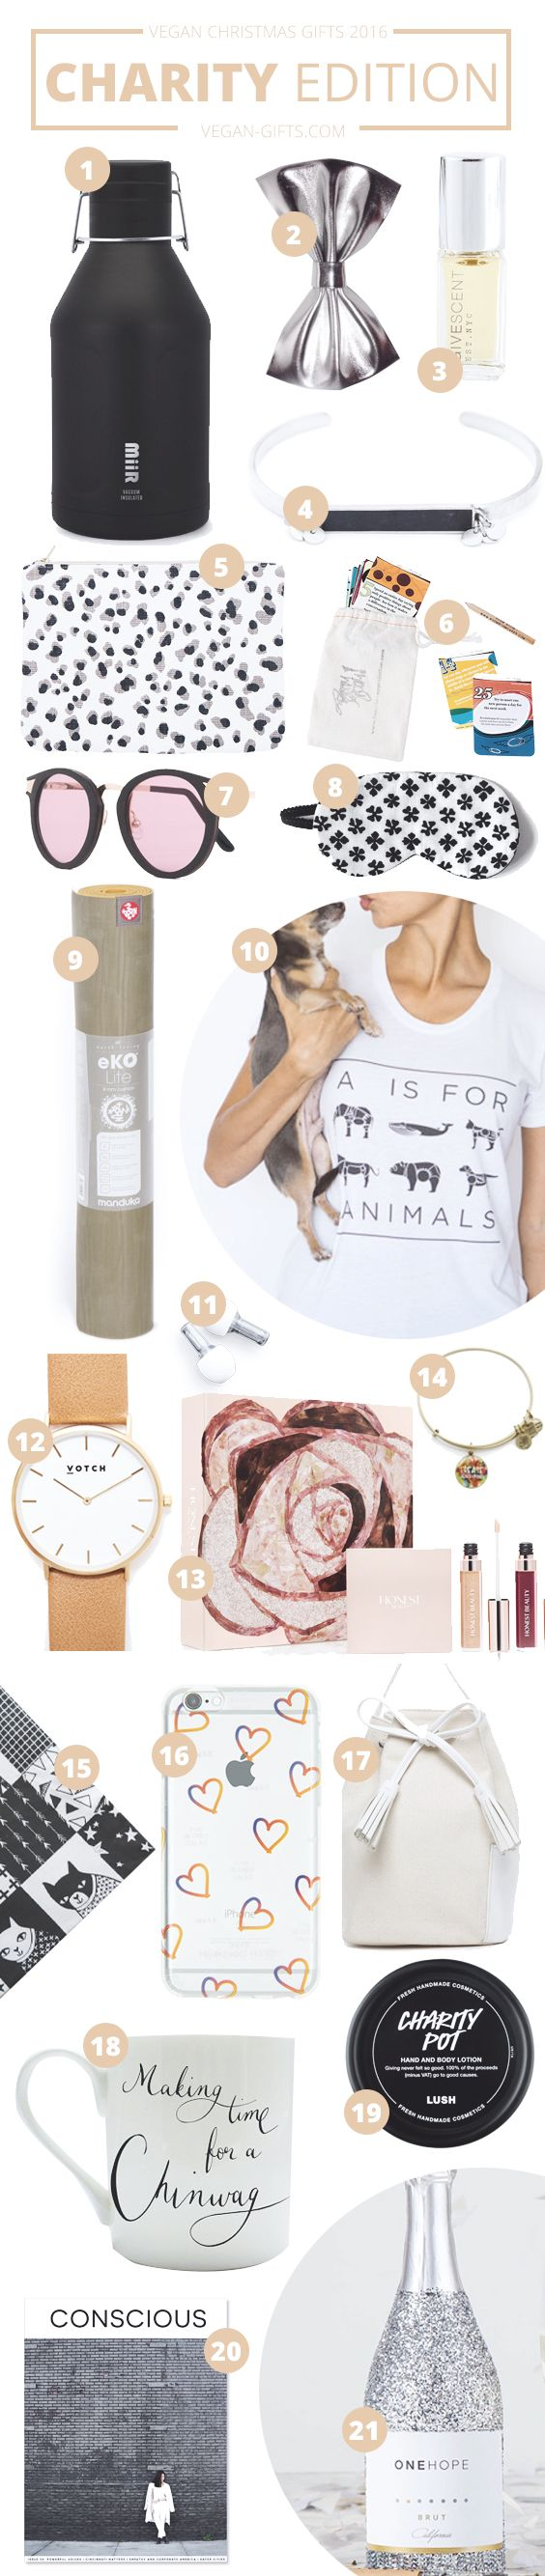 Vegan Christmas Gifts: The Charity Edition